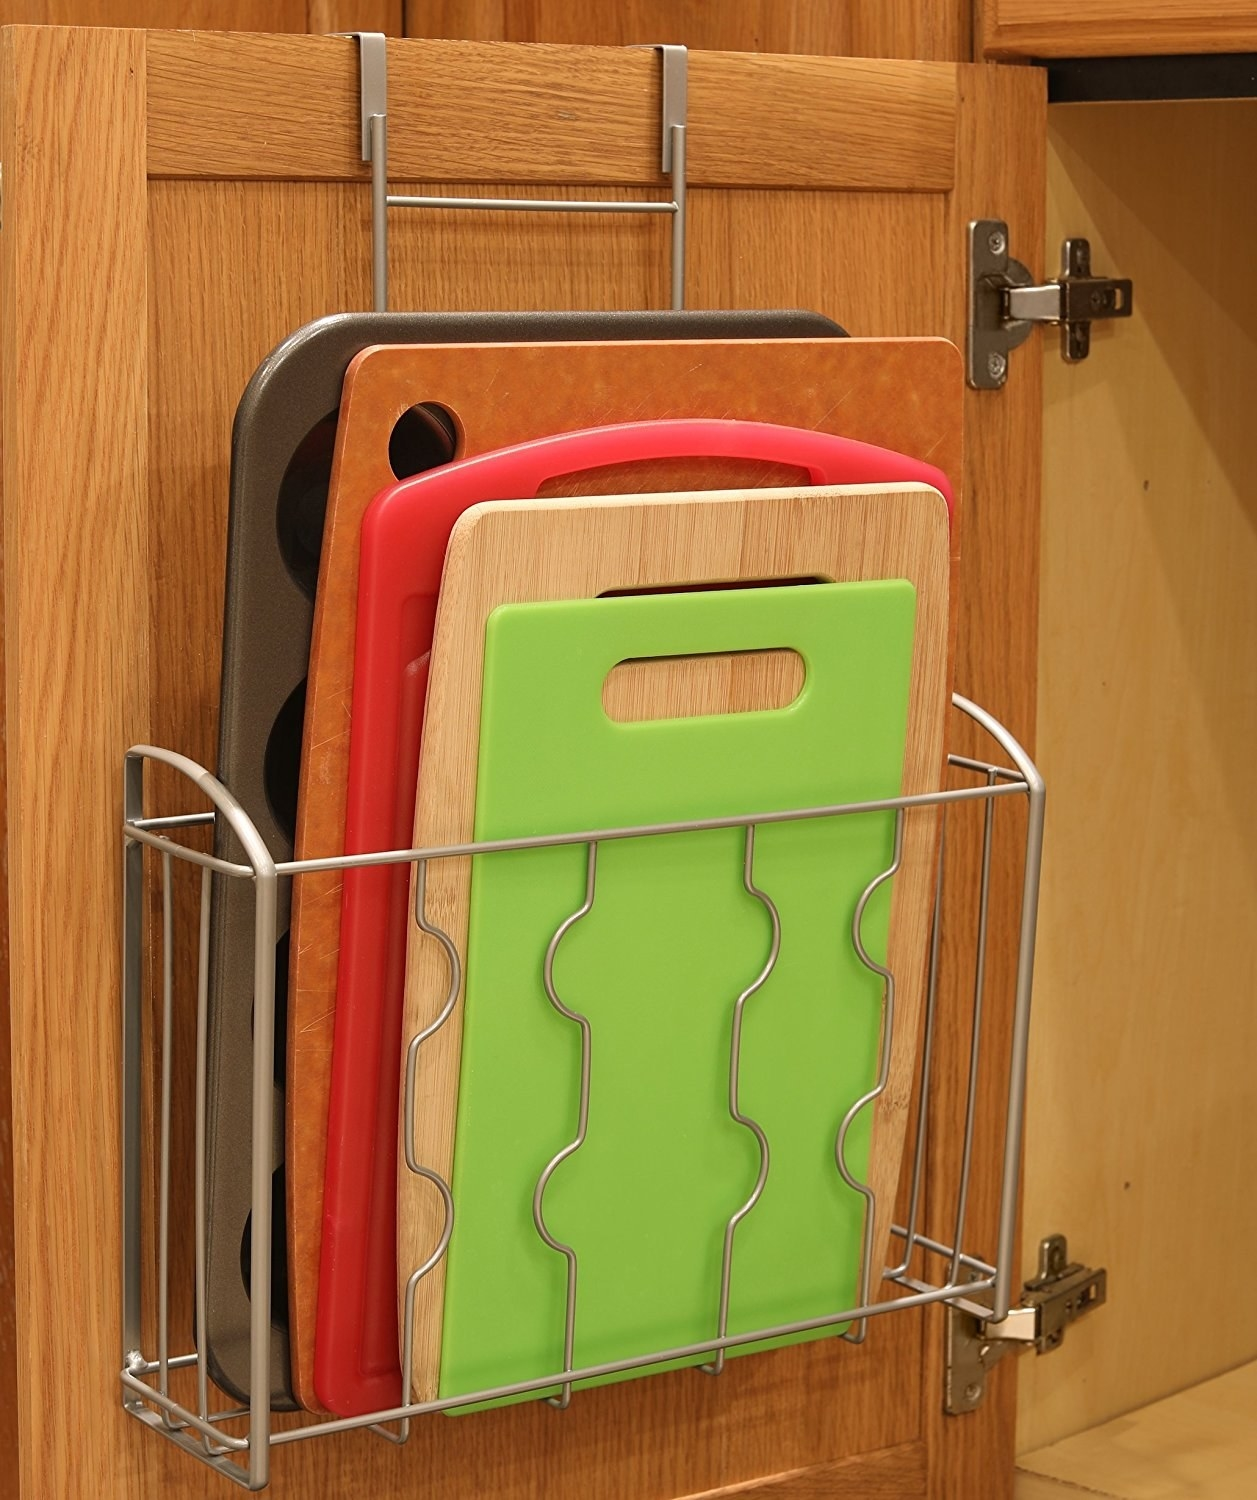 a basket for cutting board hooked onto the inside of a cabinet